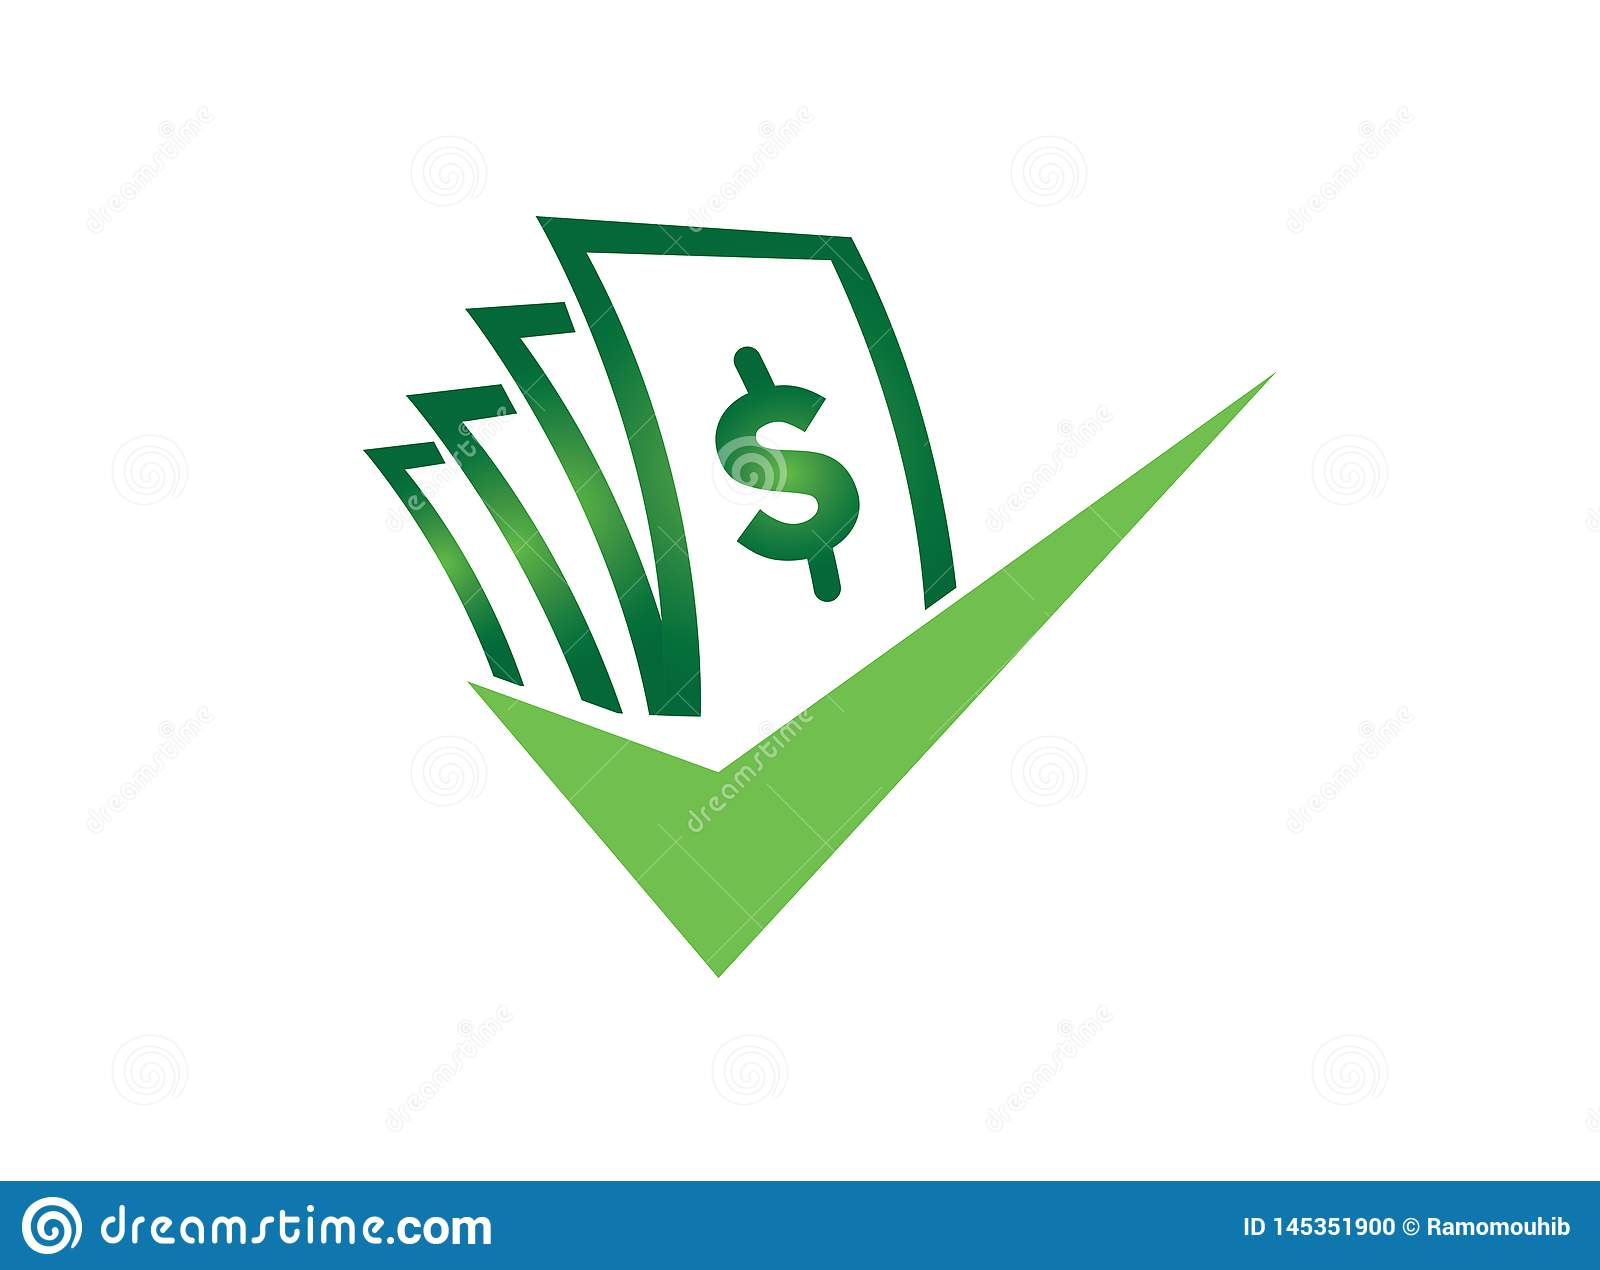 Money with check mark for logo design illustrator, good deal symbol, investment business icon